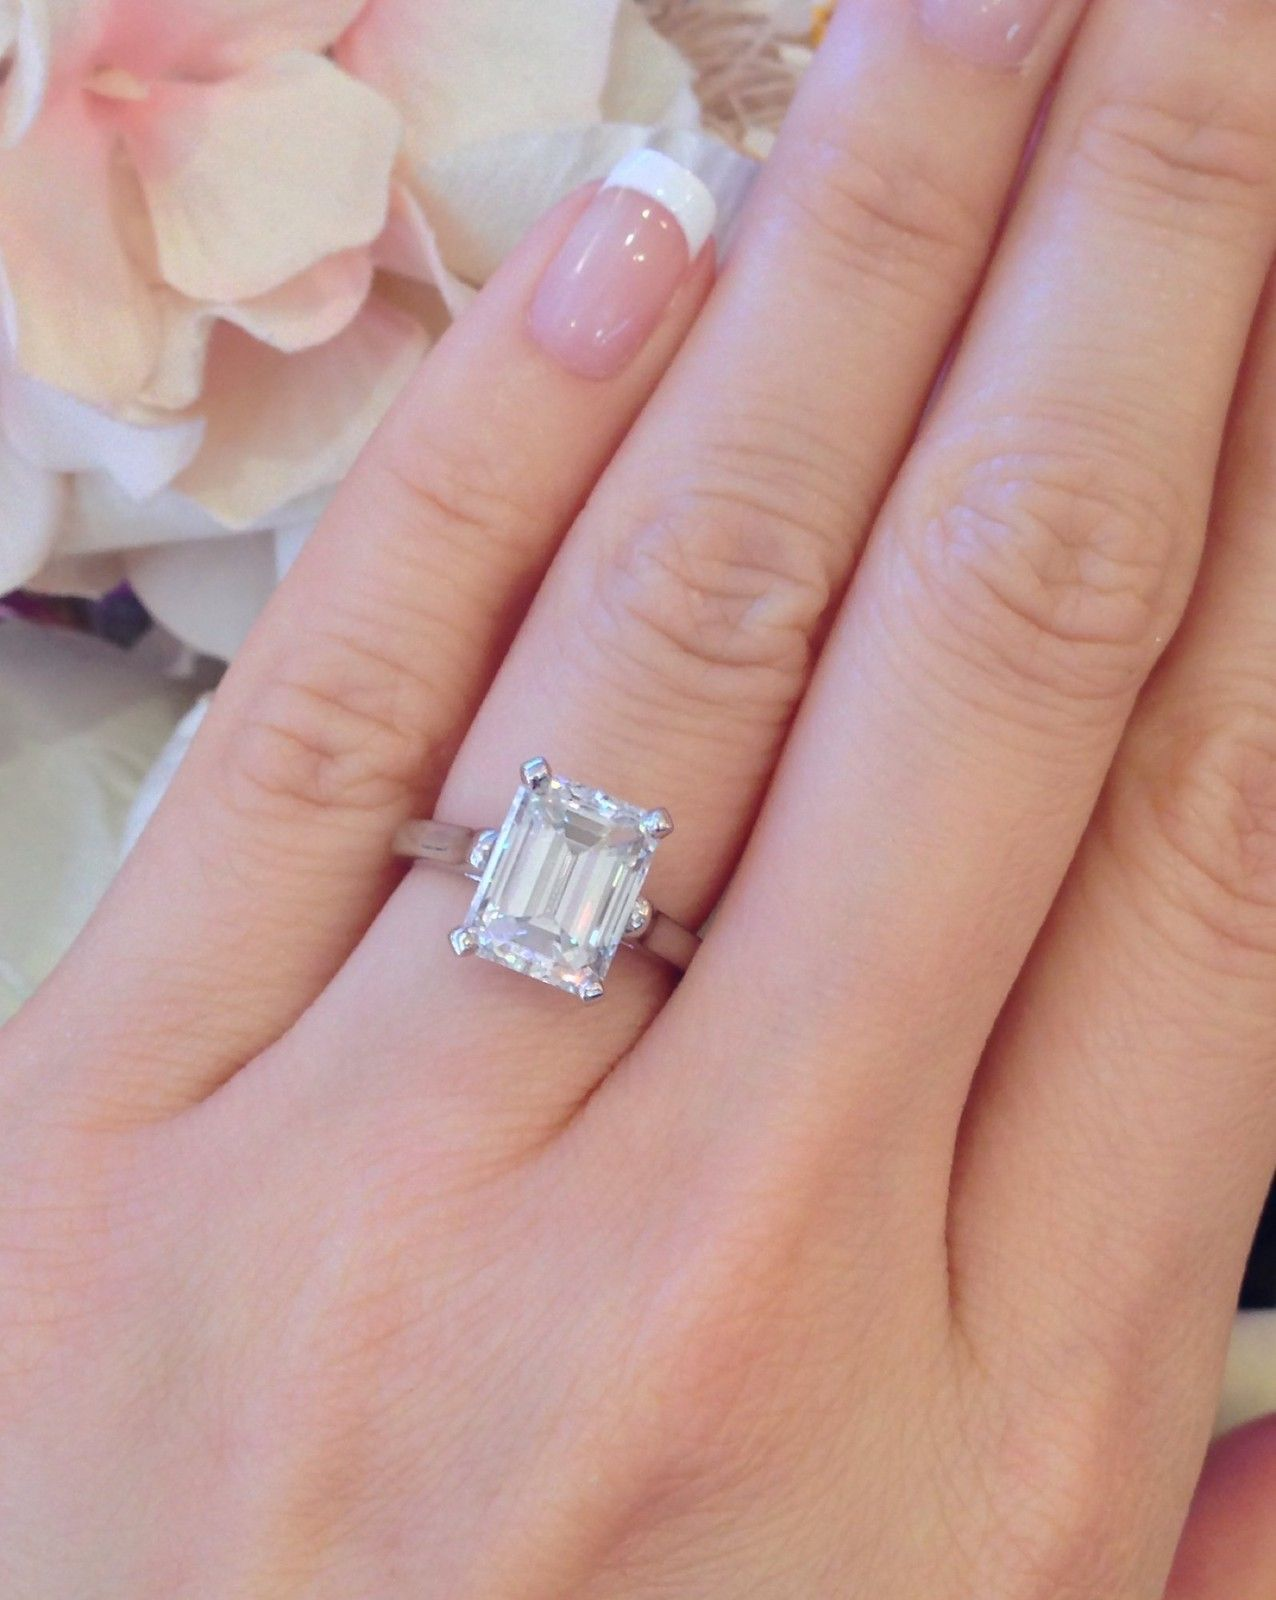 · Tiffany & Co 3.86 ct GIA VS2-G Emerald Cut Platinum Diamond ...